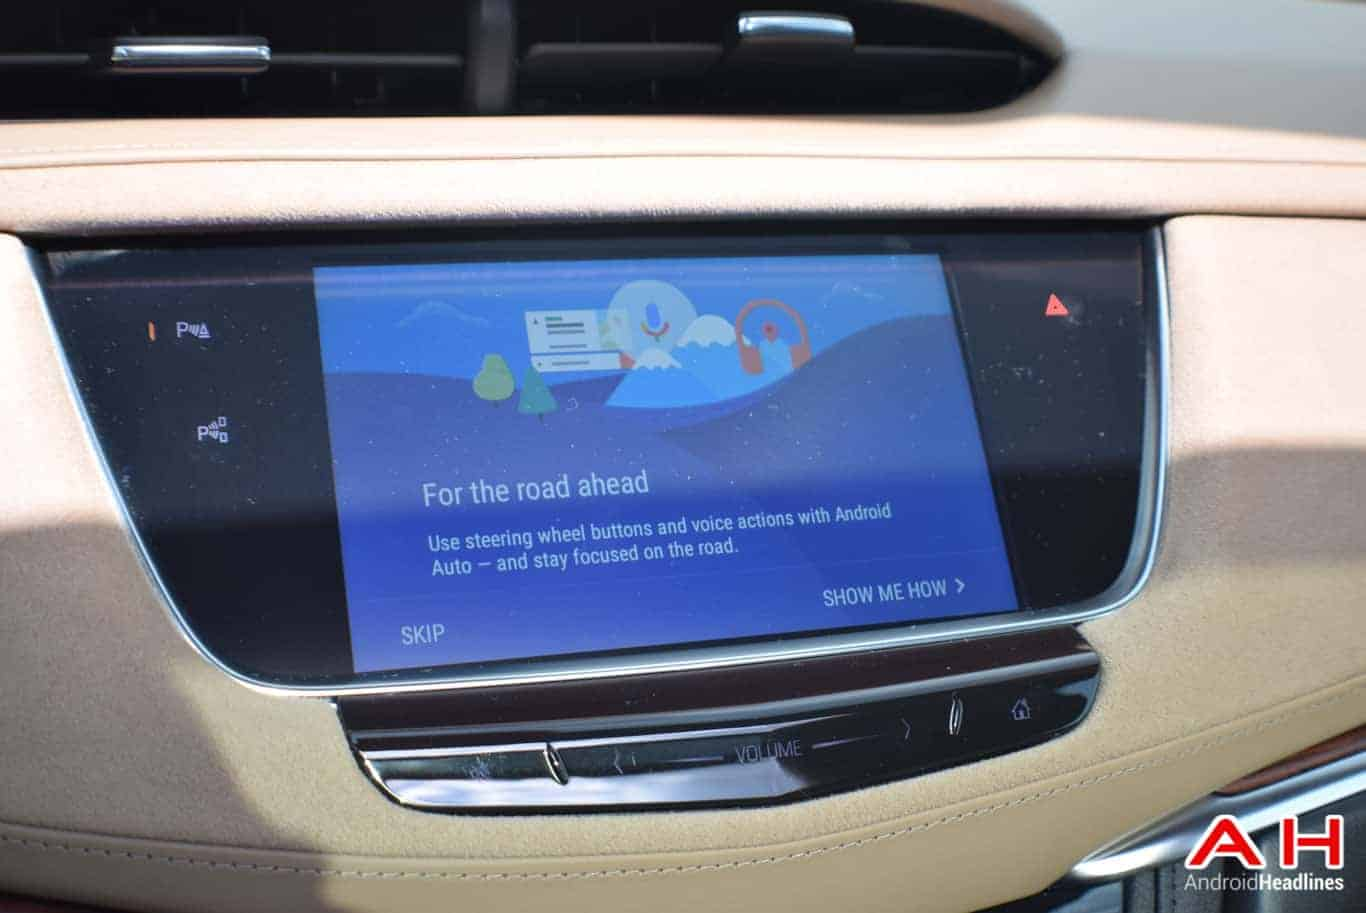 2017 Cadillac XT5 Android Auto Review AM AH 4